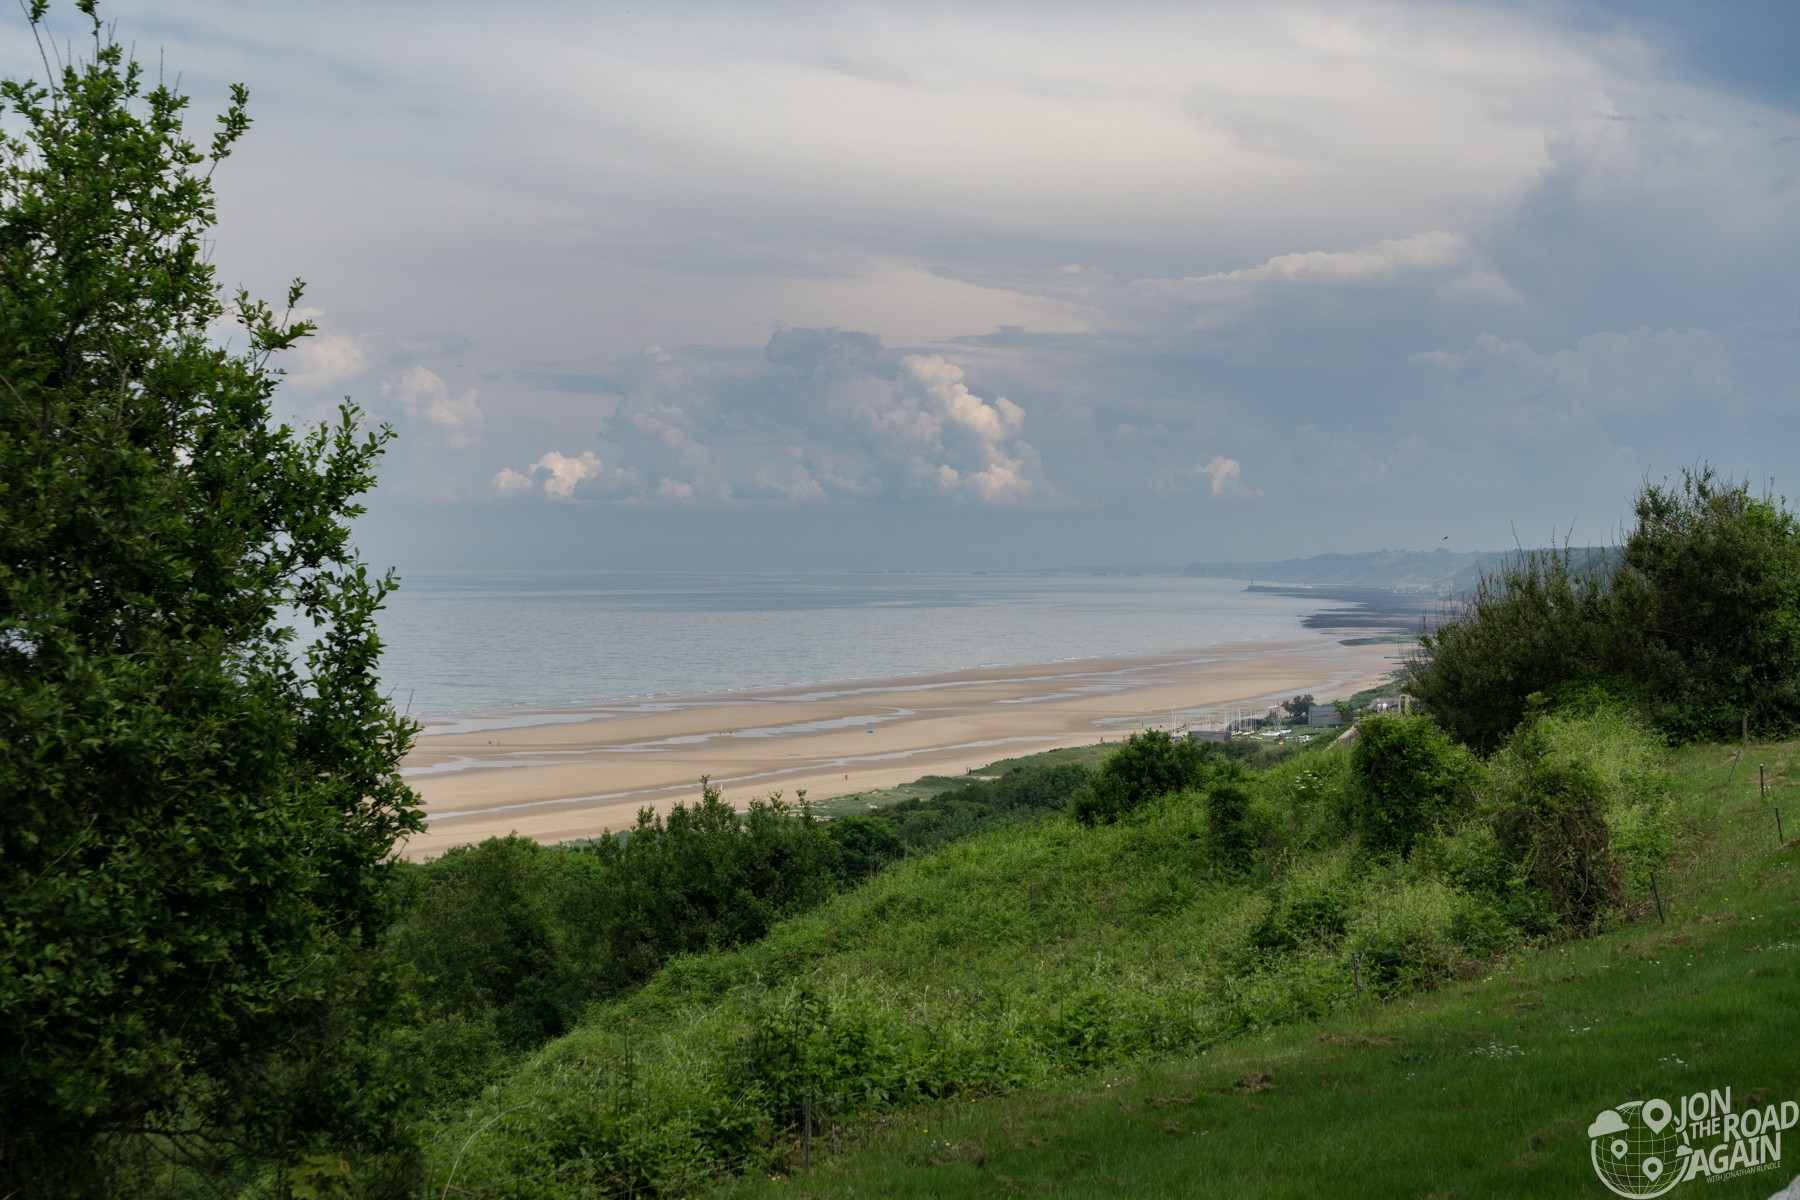 Omaha Beach from the Normandy American Cemetery